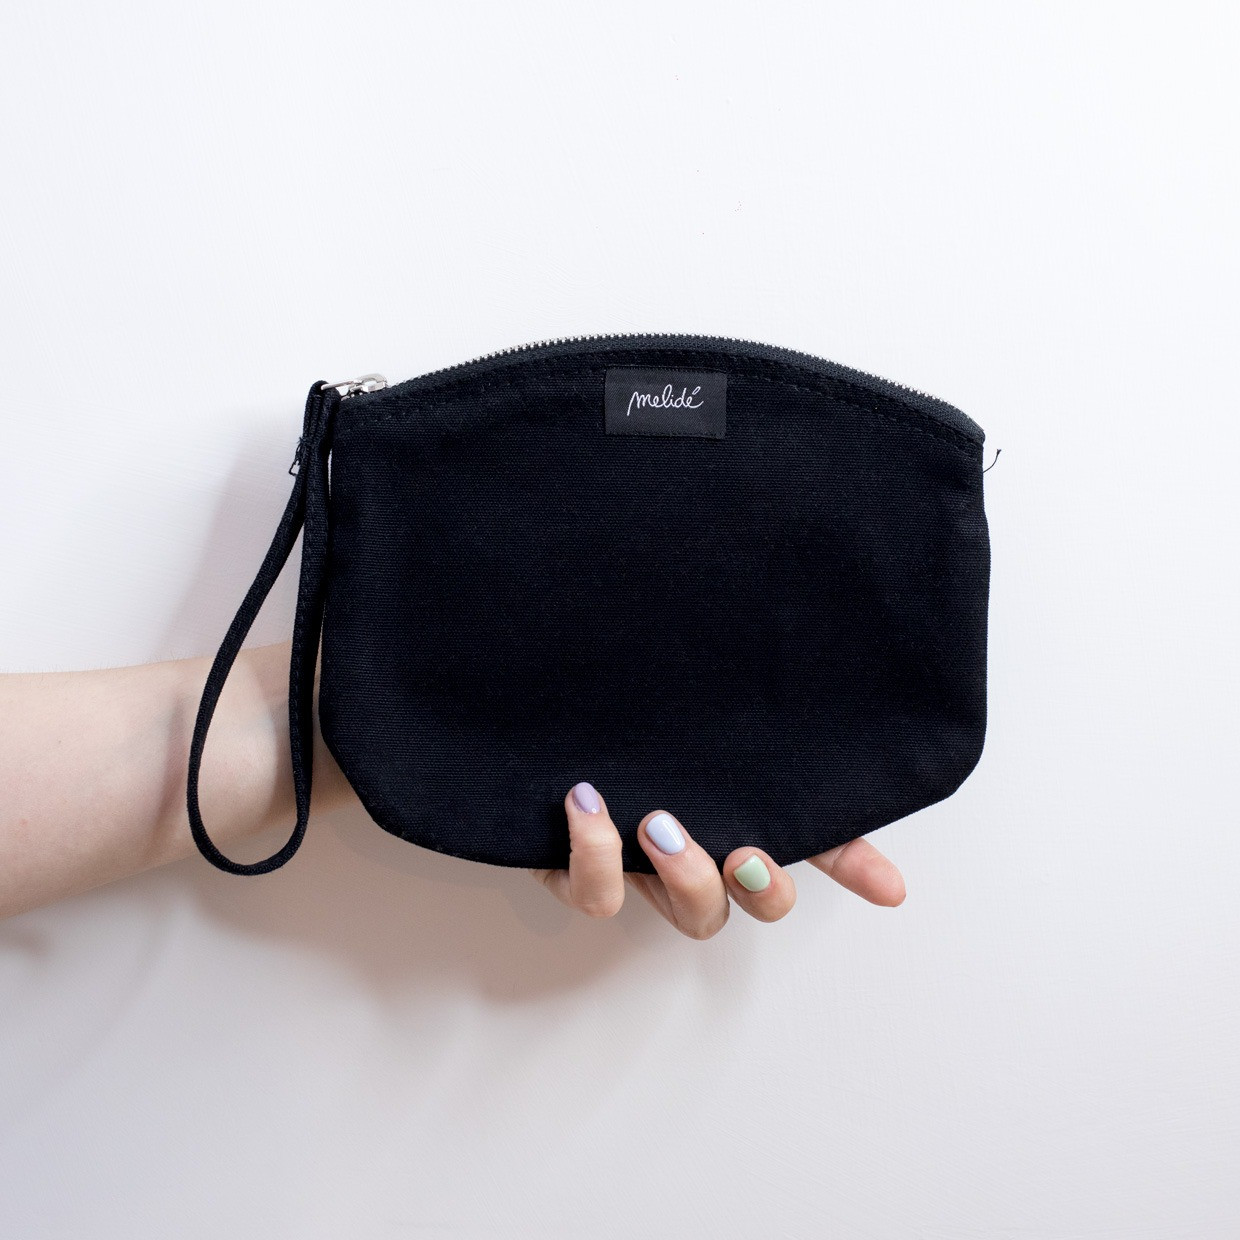 The ZIPPED POUCH M